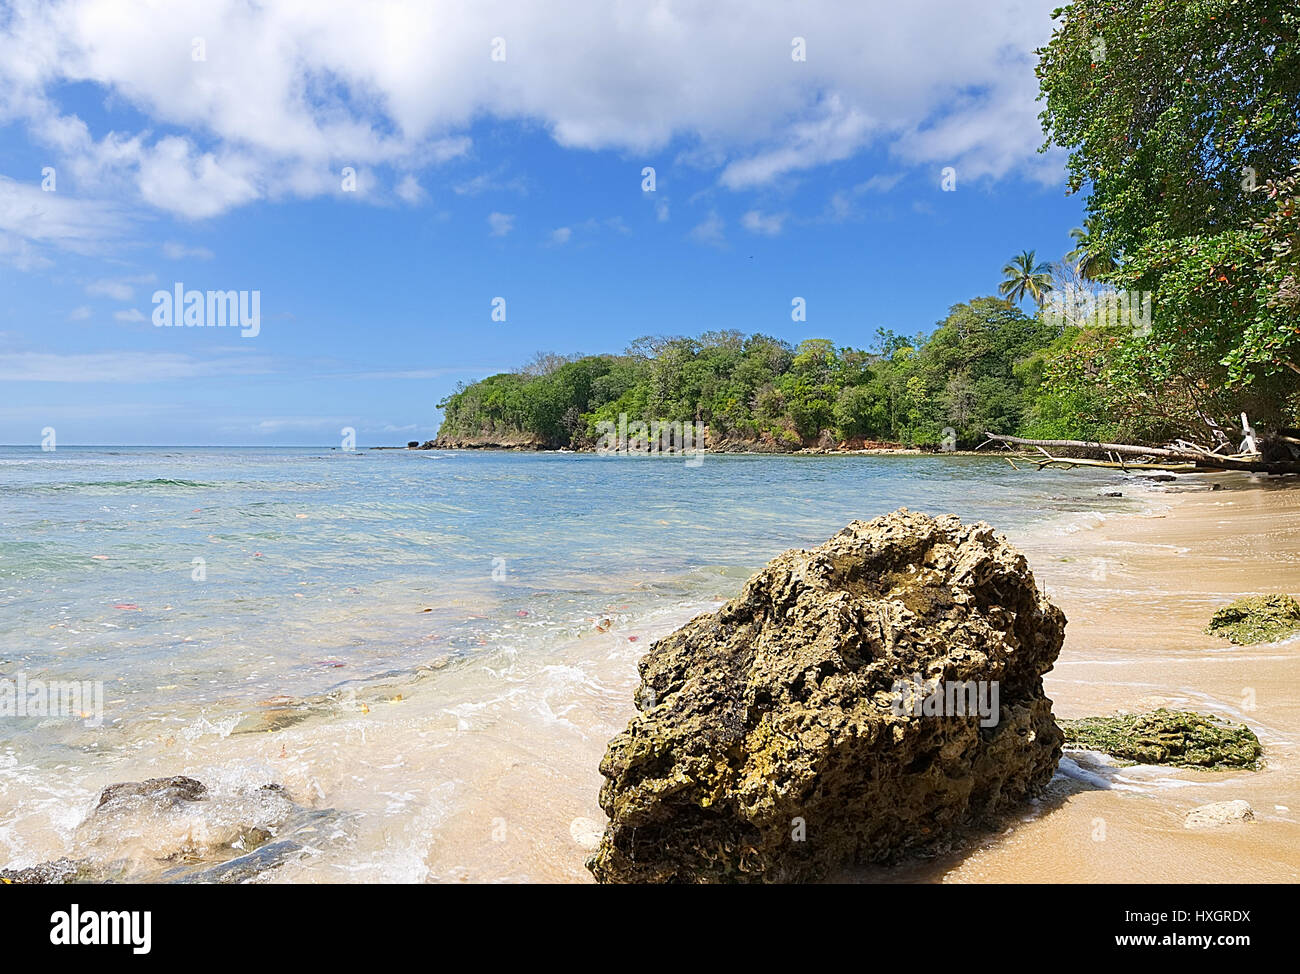 Republic of Trinidad and Tobago - Tobago island - Mt. Irvine bay - Tropical beach of Caribbean sea - Stock Image